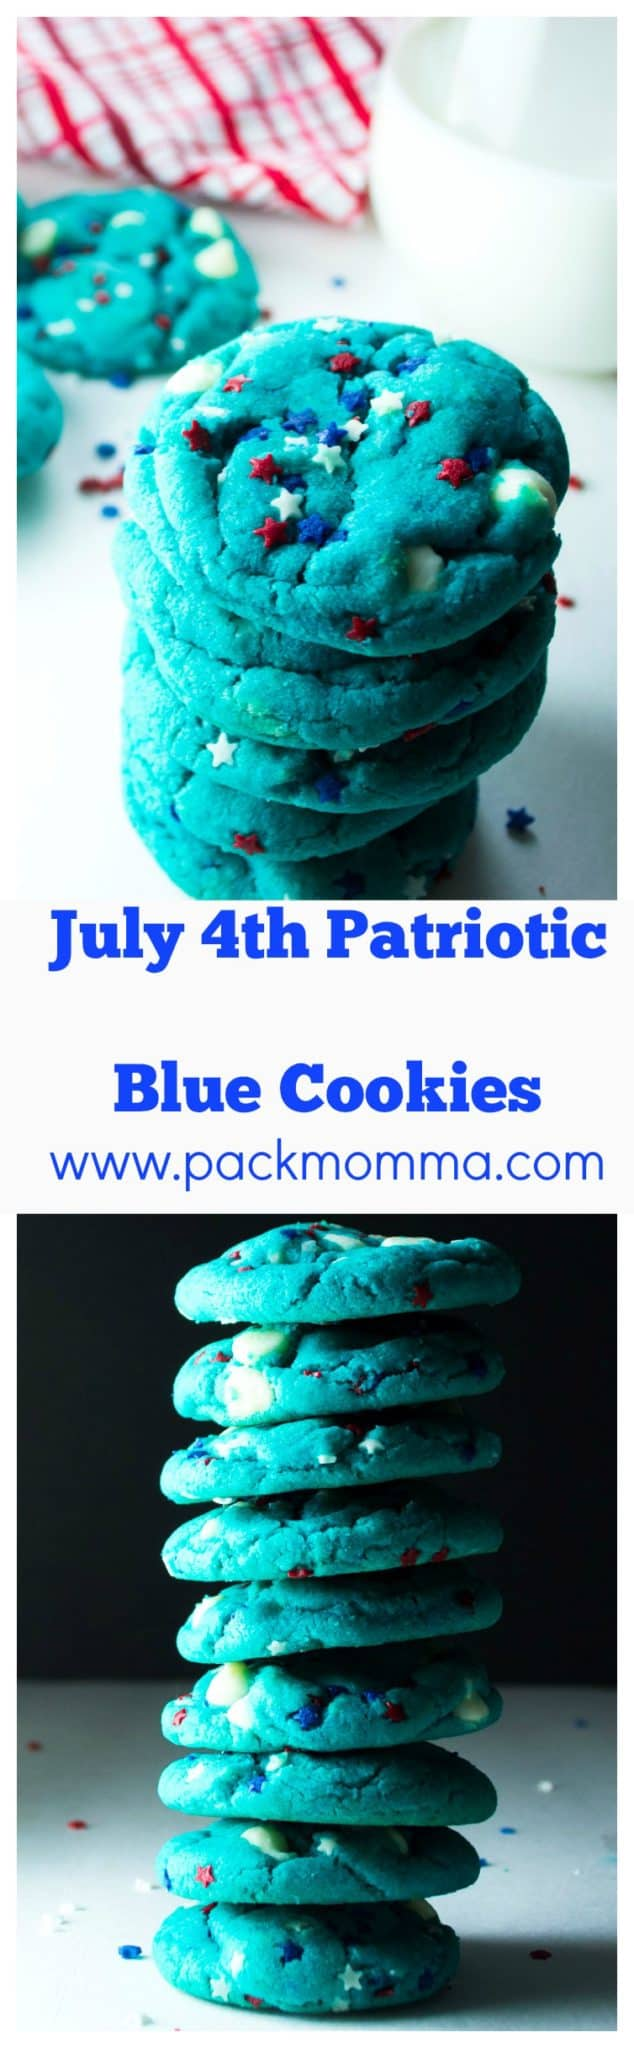 July 4th Patriotic Blue Cookies | Celebrate your red, white and blue with these festive (... and ADORABLE) July 4th Patriotic Blue Cookies! | Pack Momma | https://www.packmomma.com